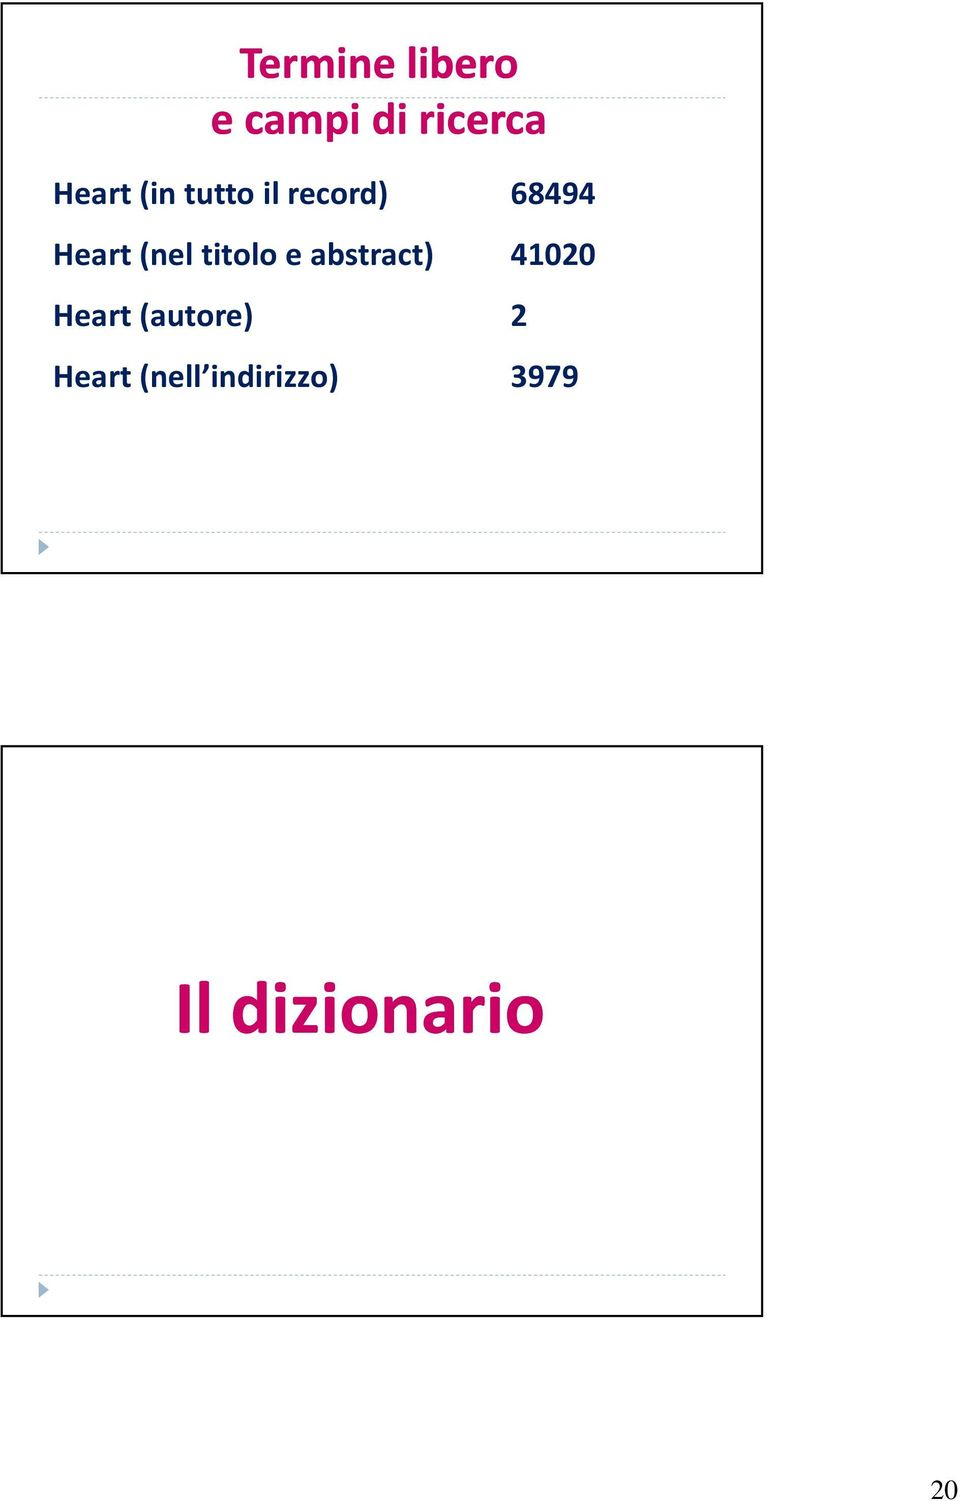 titolo e abstract) 41020 Heart (autore)